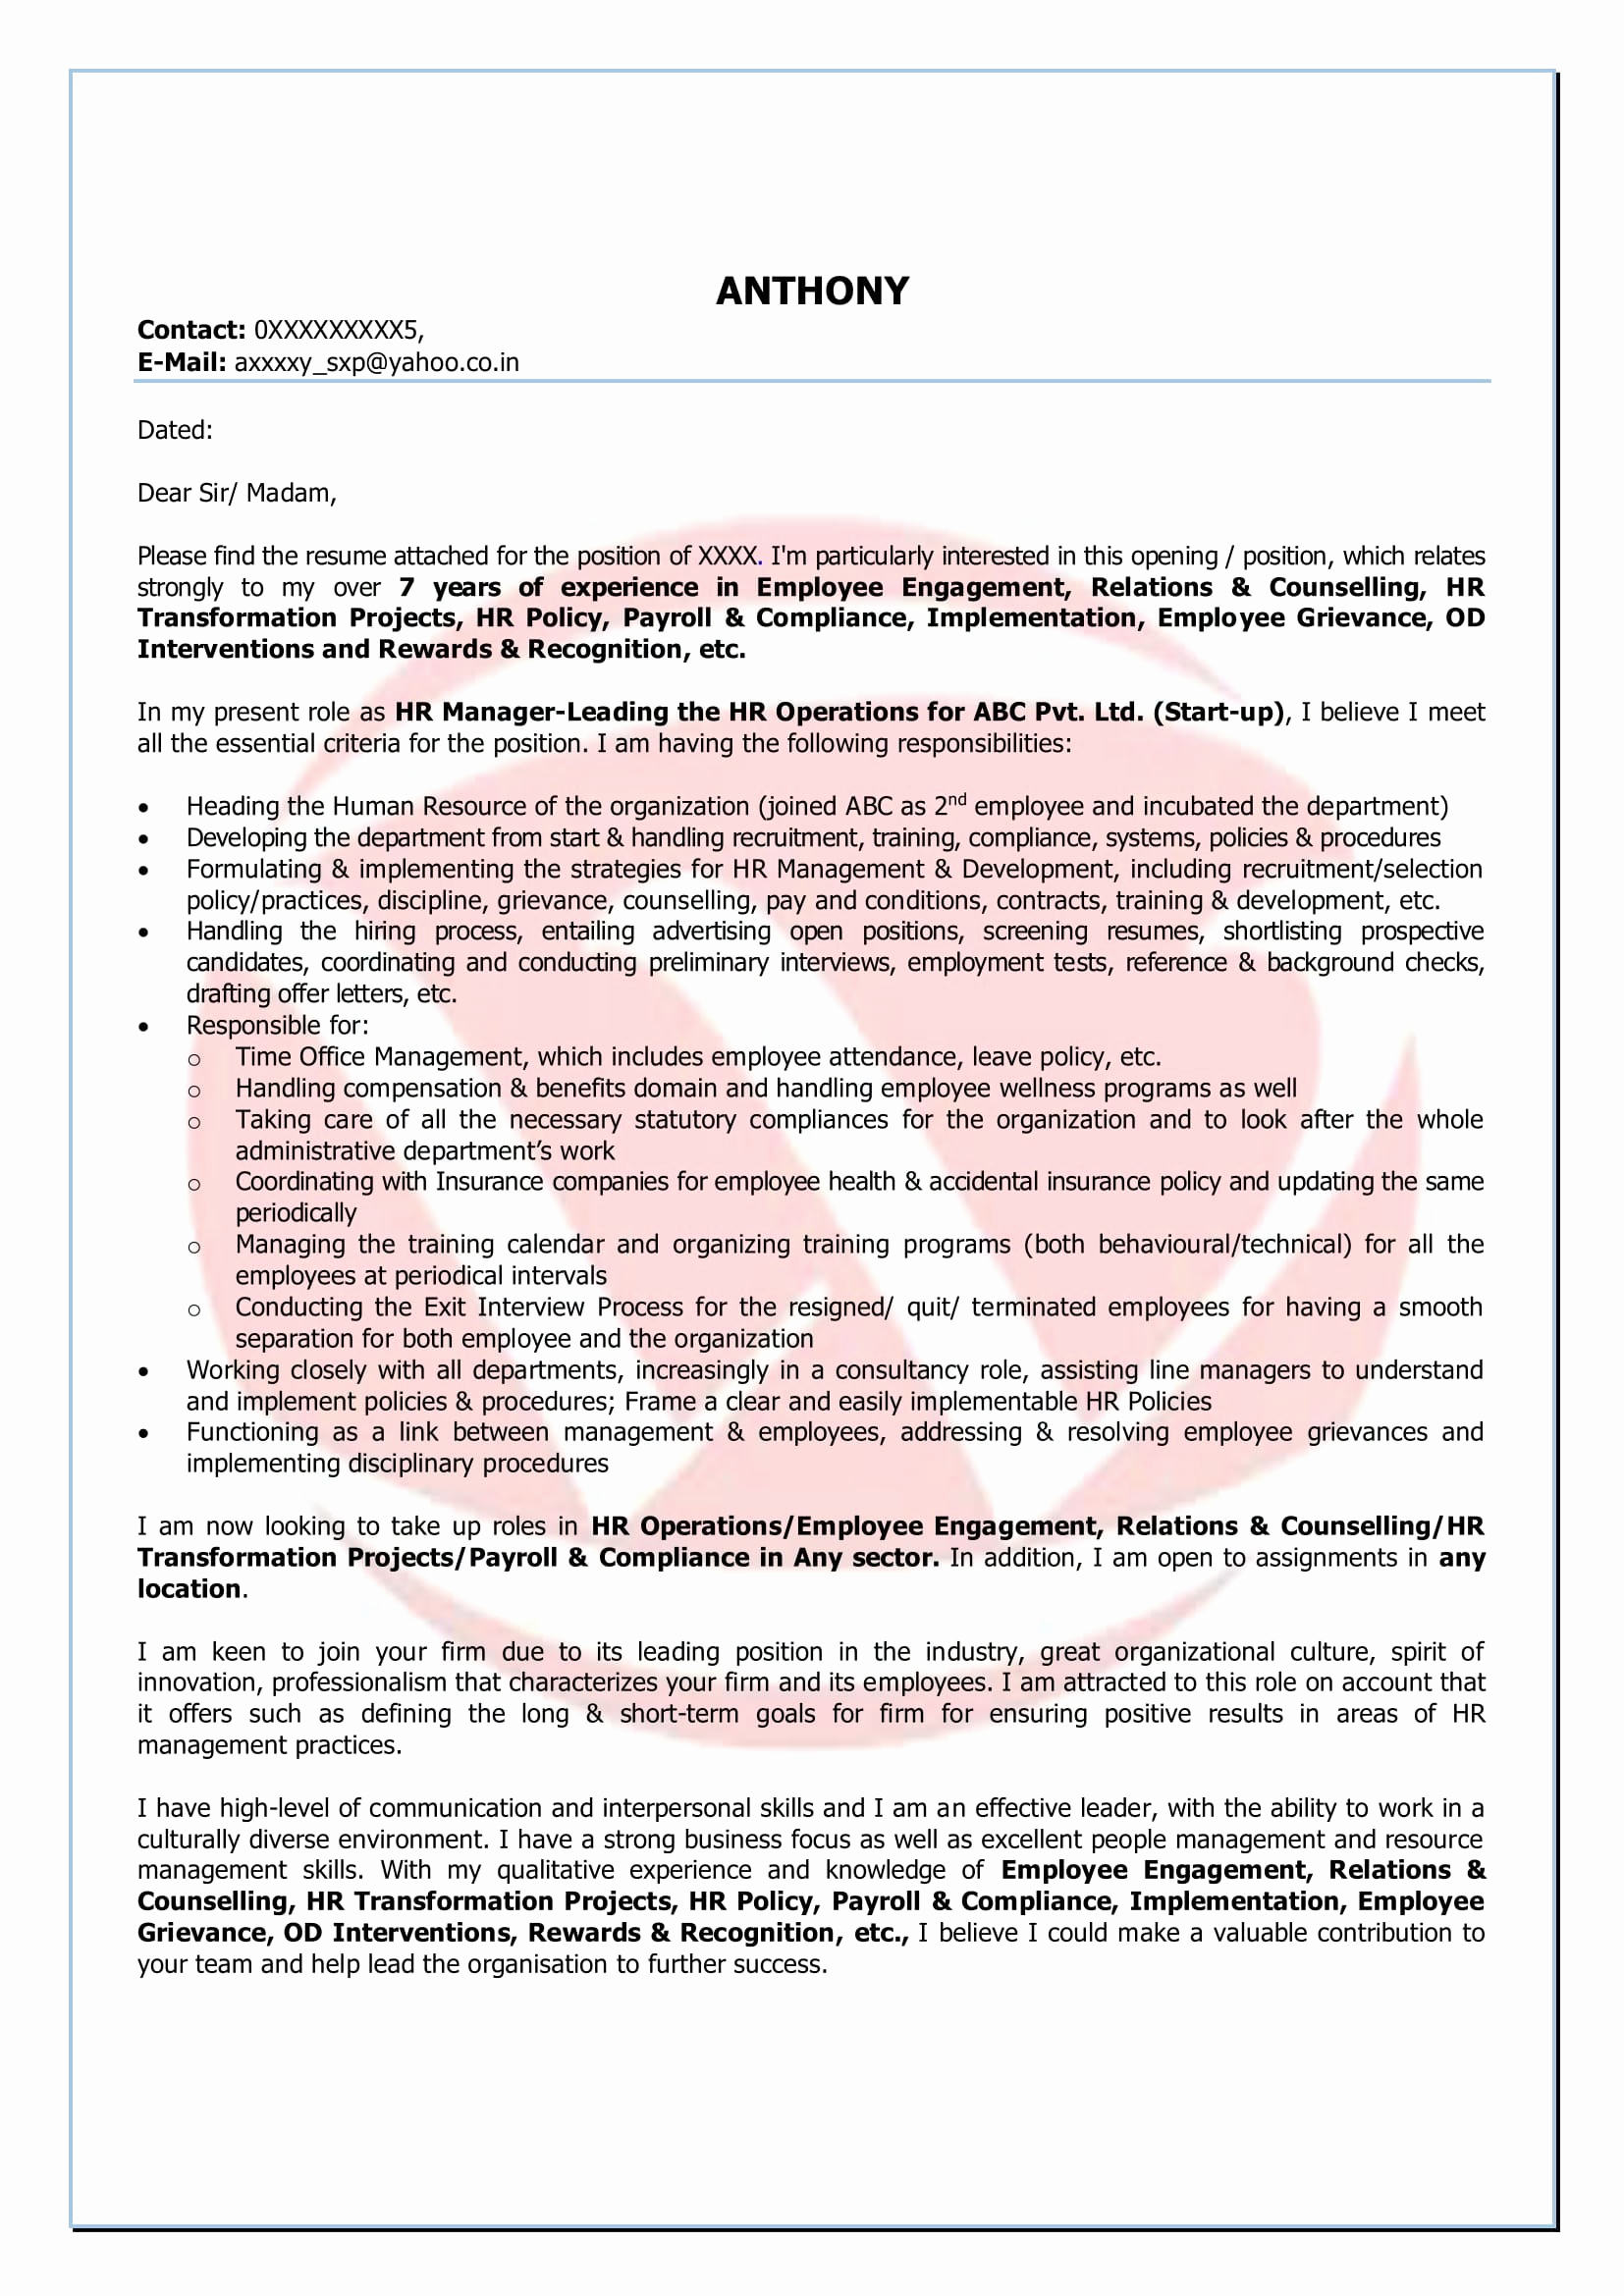 Letter Of Recommendation Letter Template - Personal Letter Re Mendation Templates Beautiful Awesome